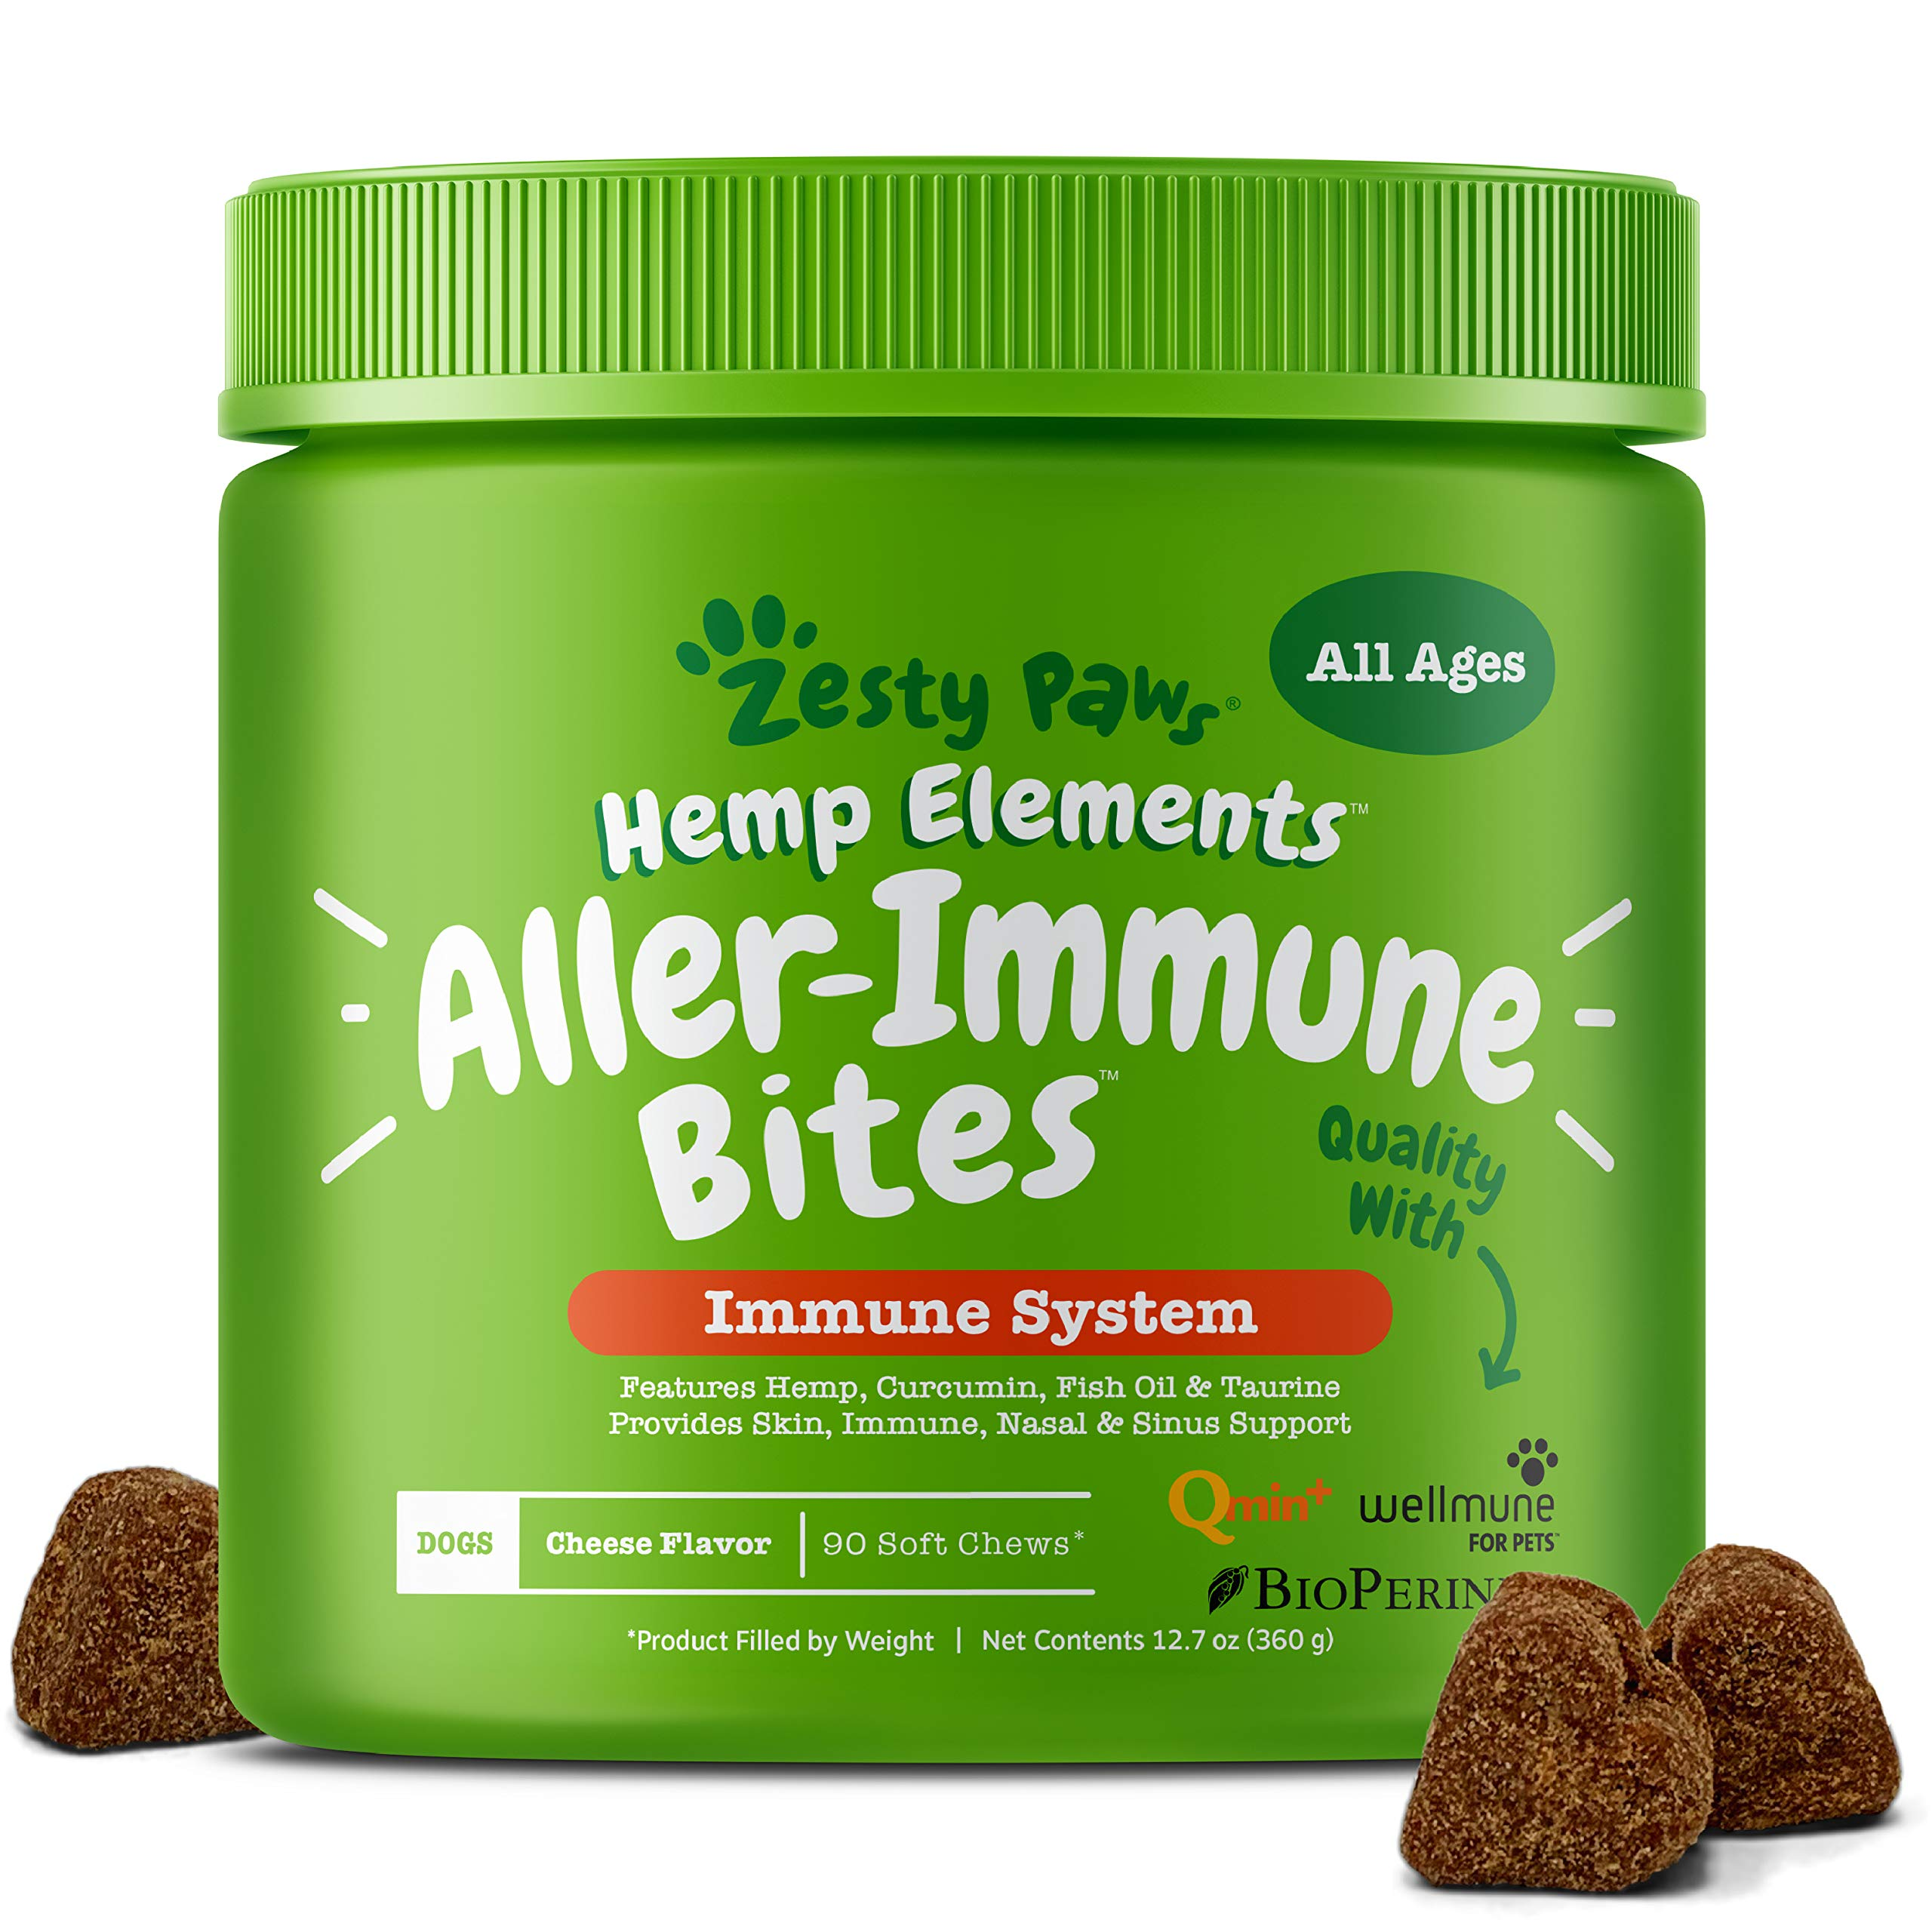 Allergy Immune Supplement with Hemp for Dogs - For Skin & Sinus + Seasonal Pollen Dog Allergies - With Cod Liver Fish Oil, Curcumin, BioPerine, Vitamin C & Quercetin - Omega 3 & 6 Support - 90 Chews by Zesty Paws